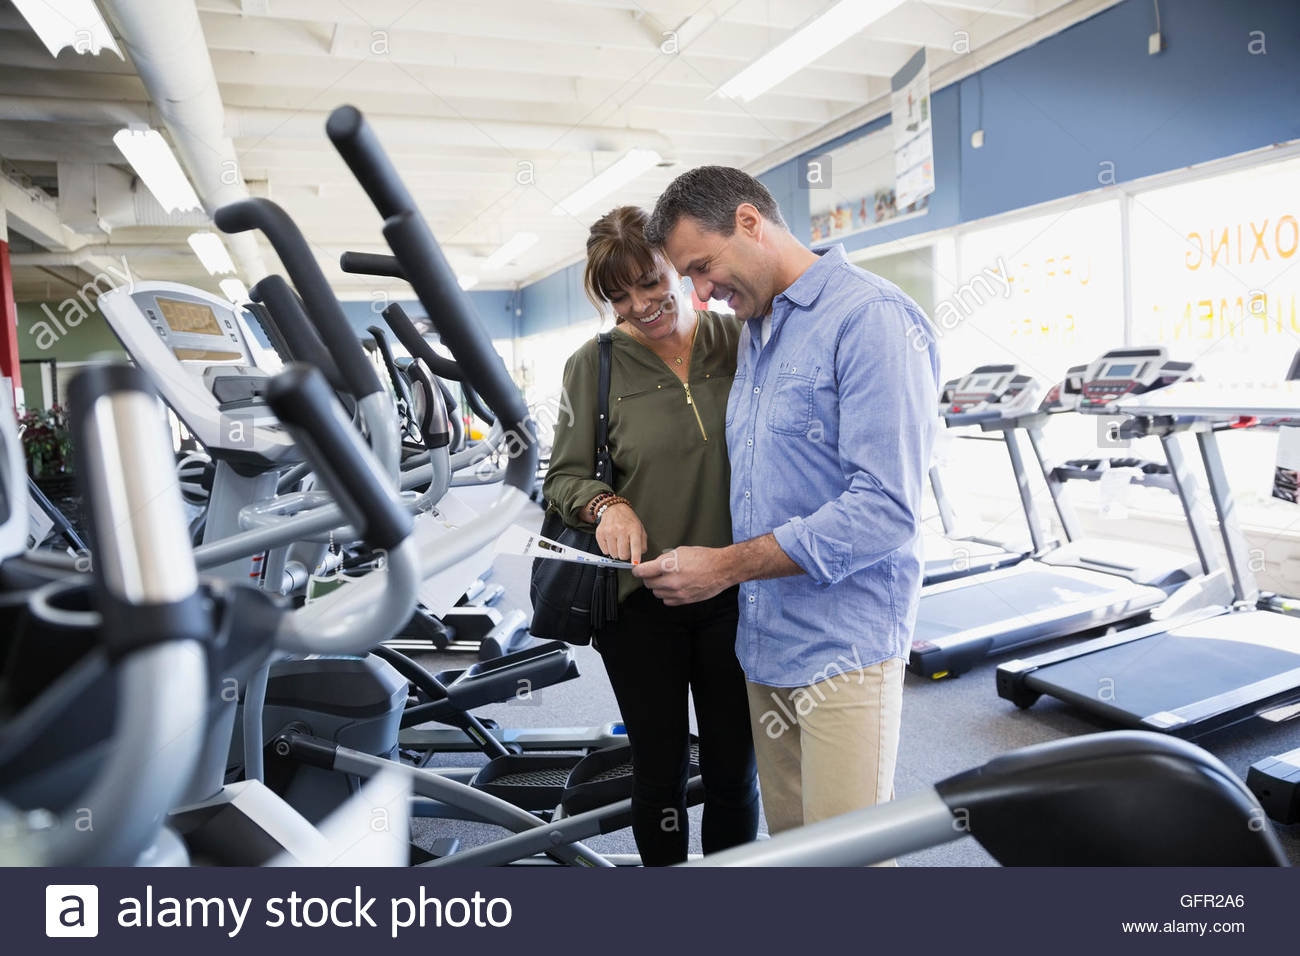 Couple looking at price tag on home gym cardio equipment in store - Stock Image